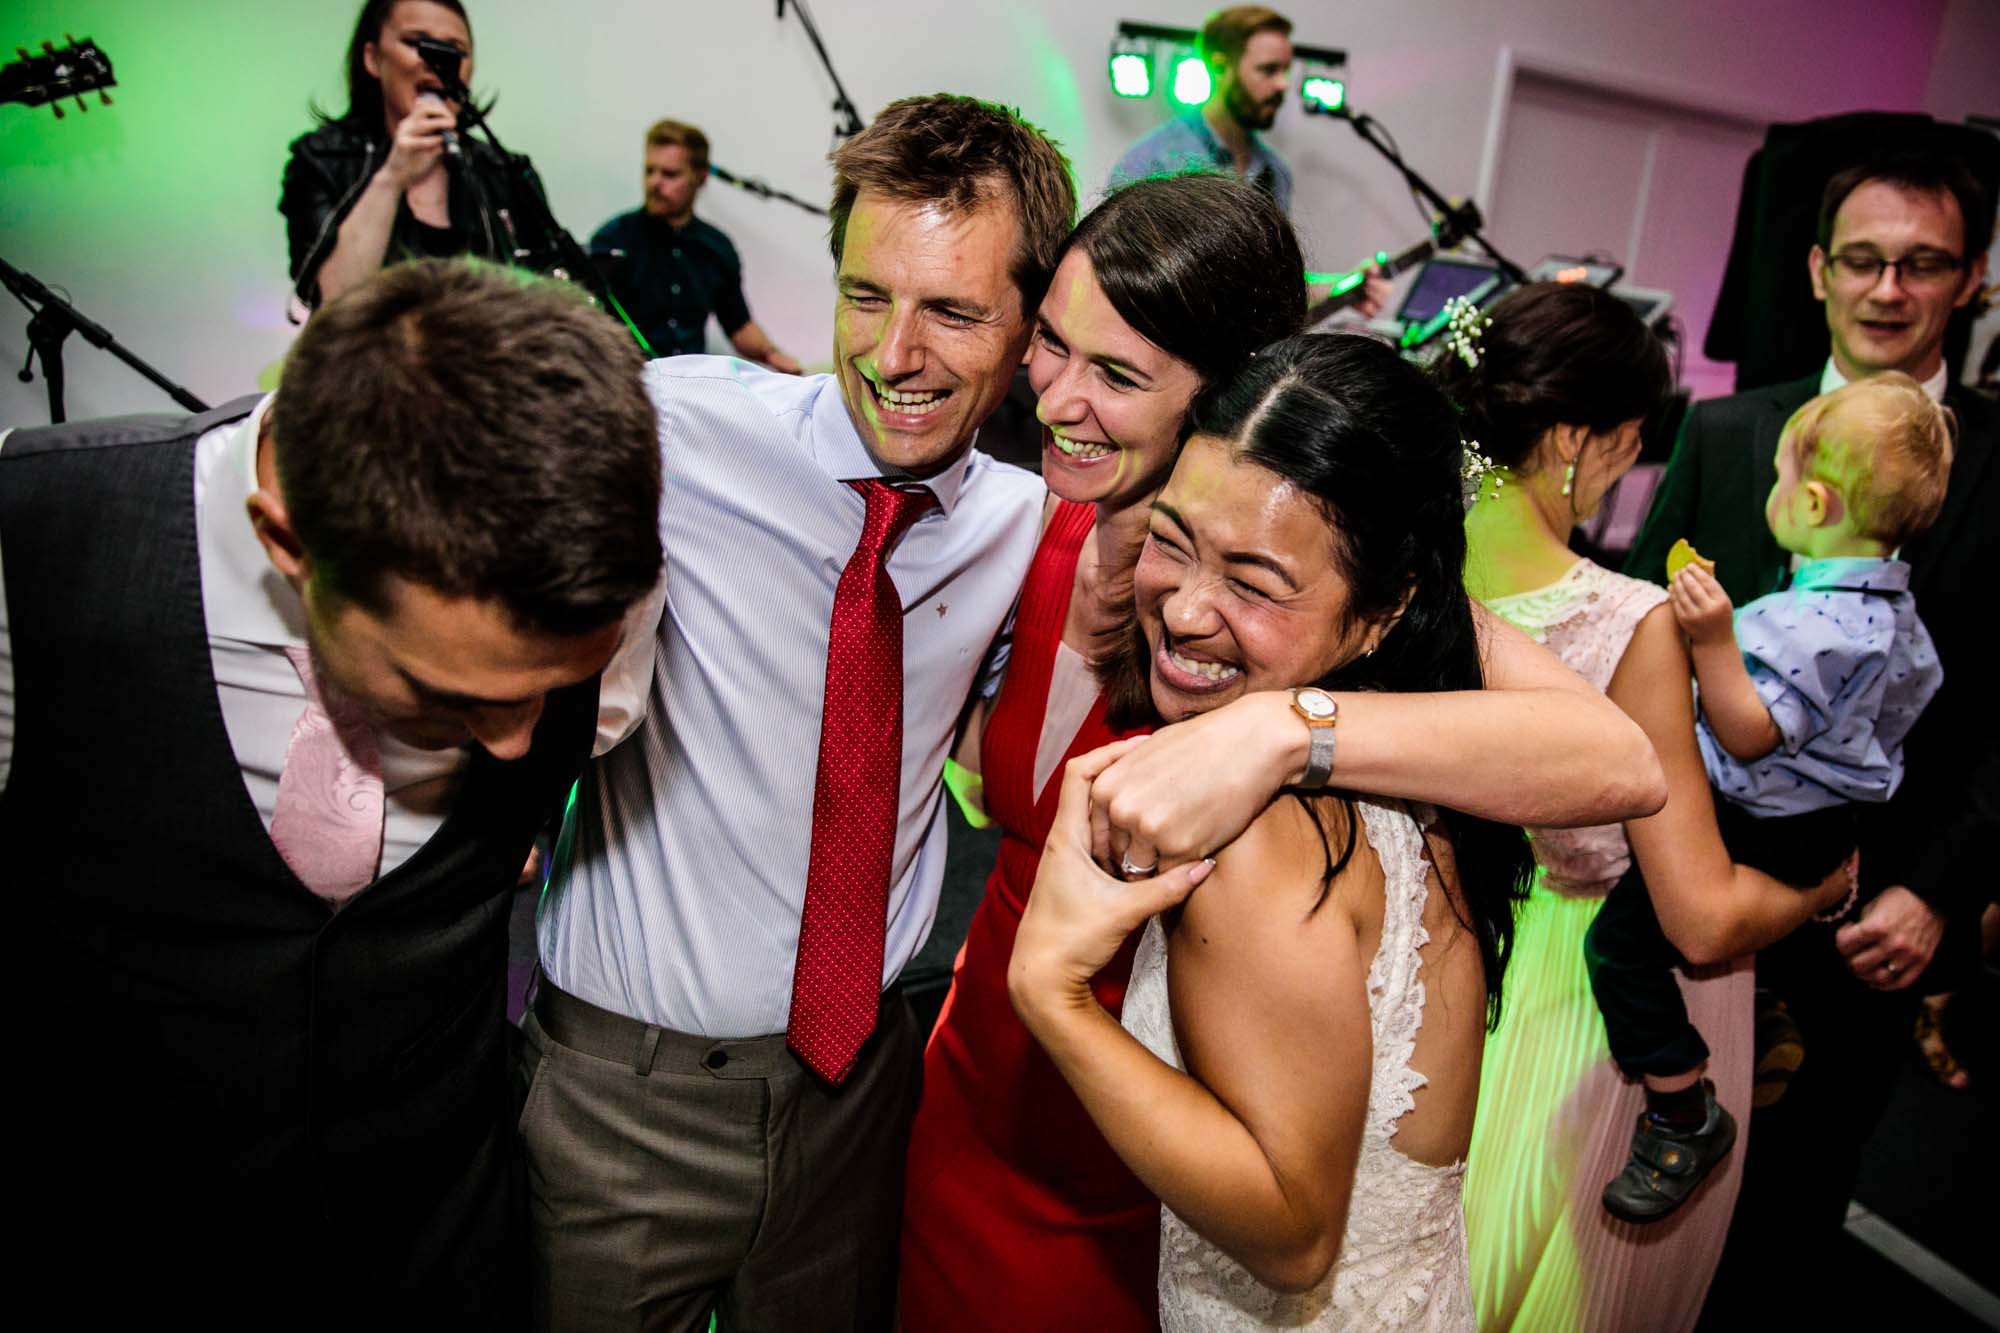 Fun Wedding Photographs Manley Mere